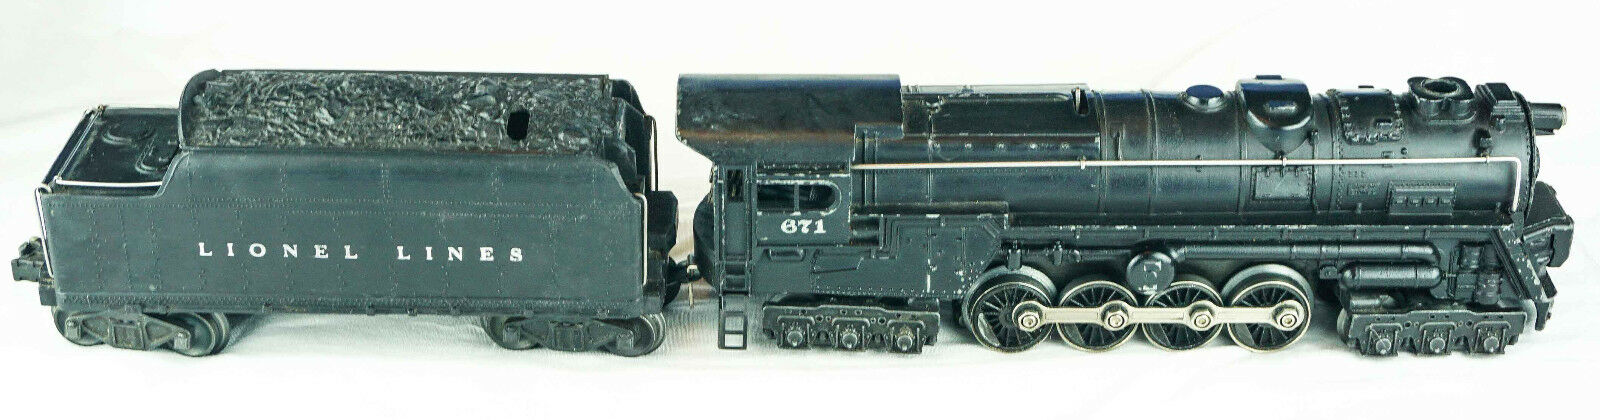 LIONEL Train LOCOMOTIVE and caol Tender - Great condition - Collectible